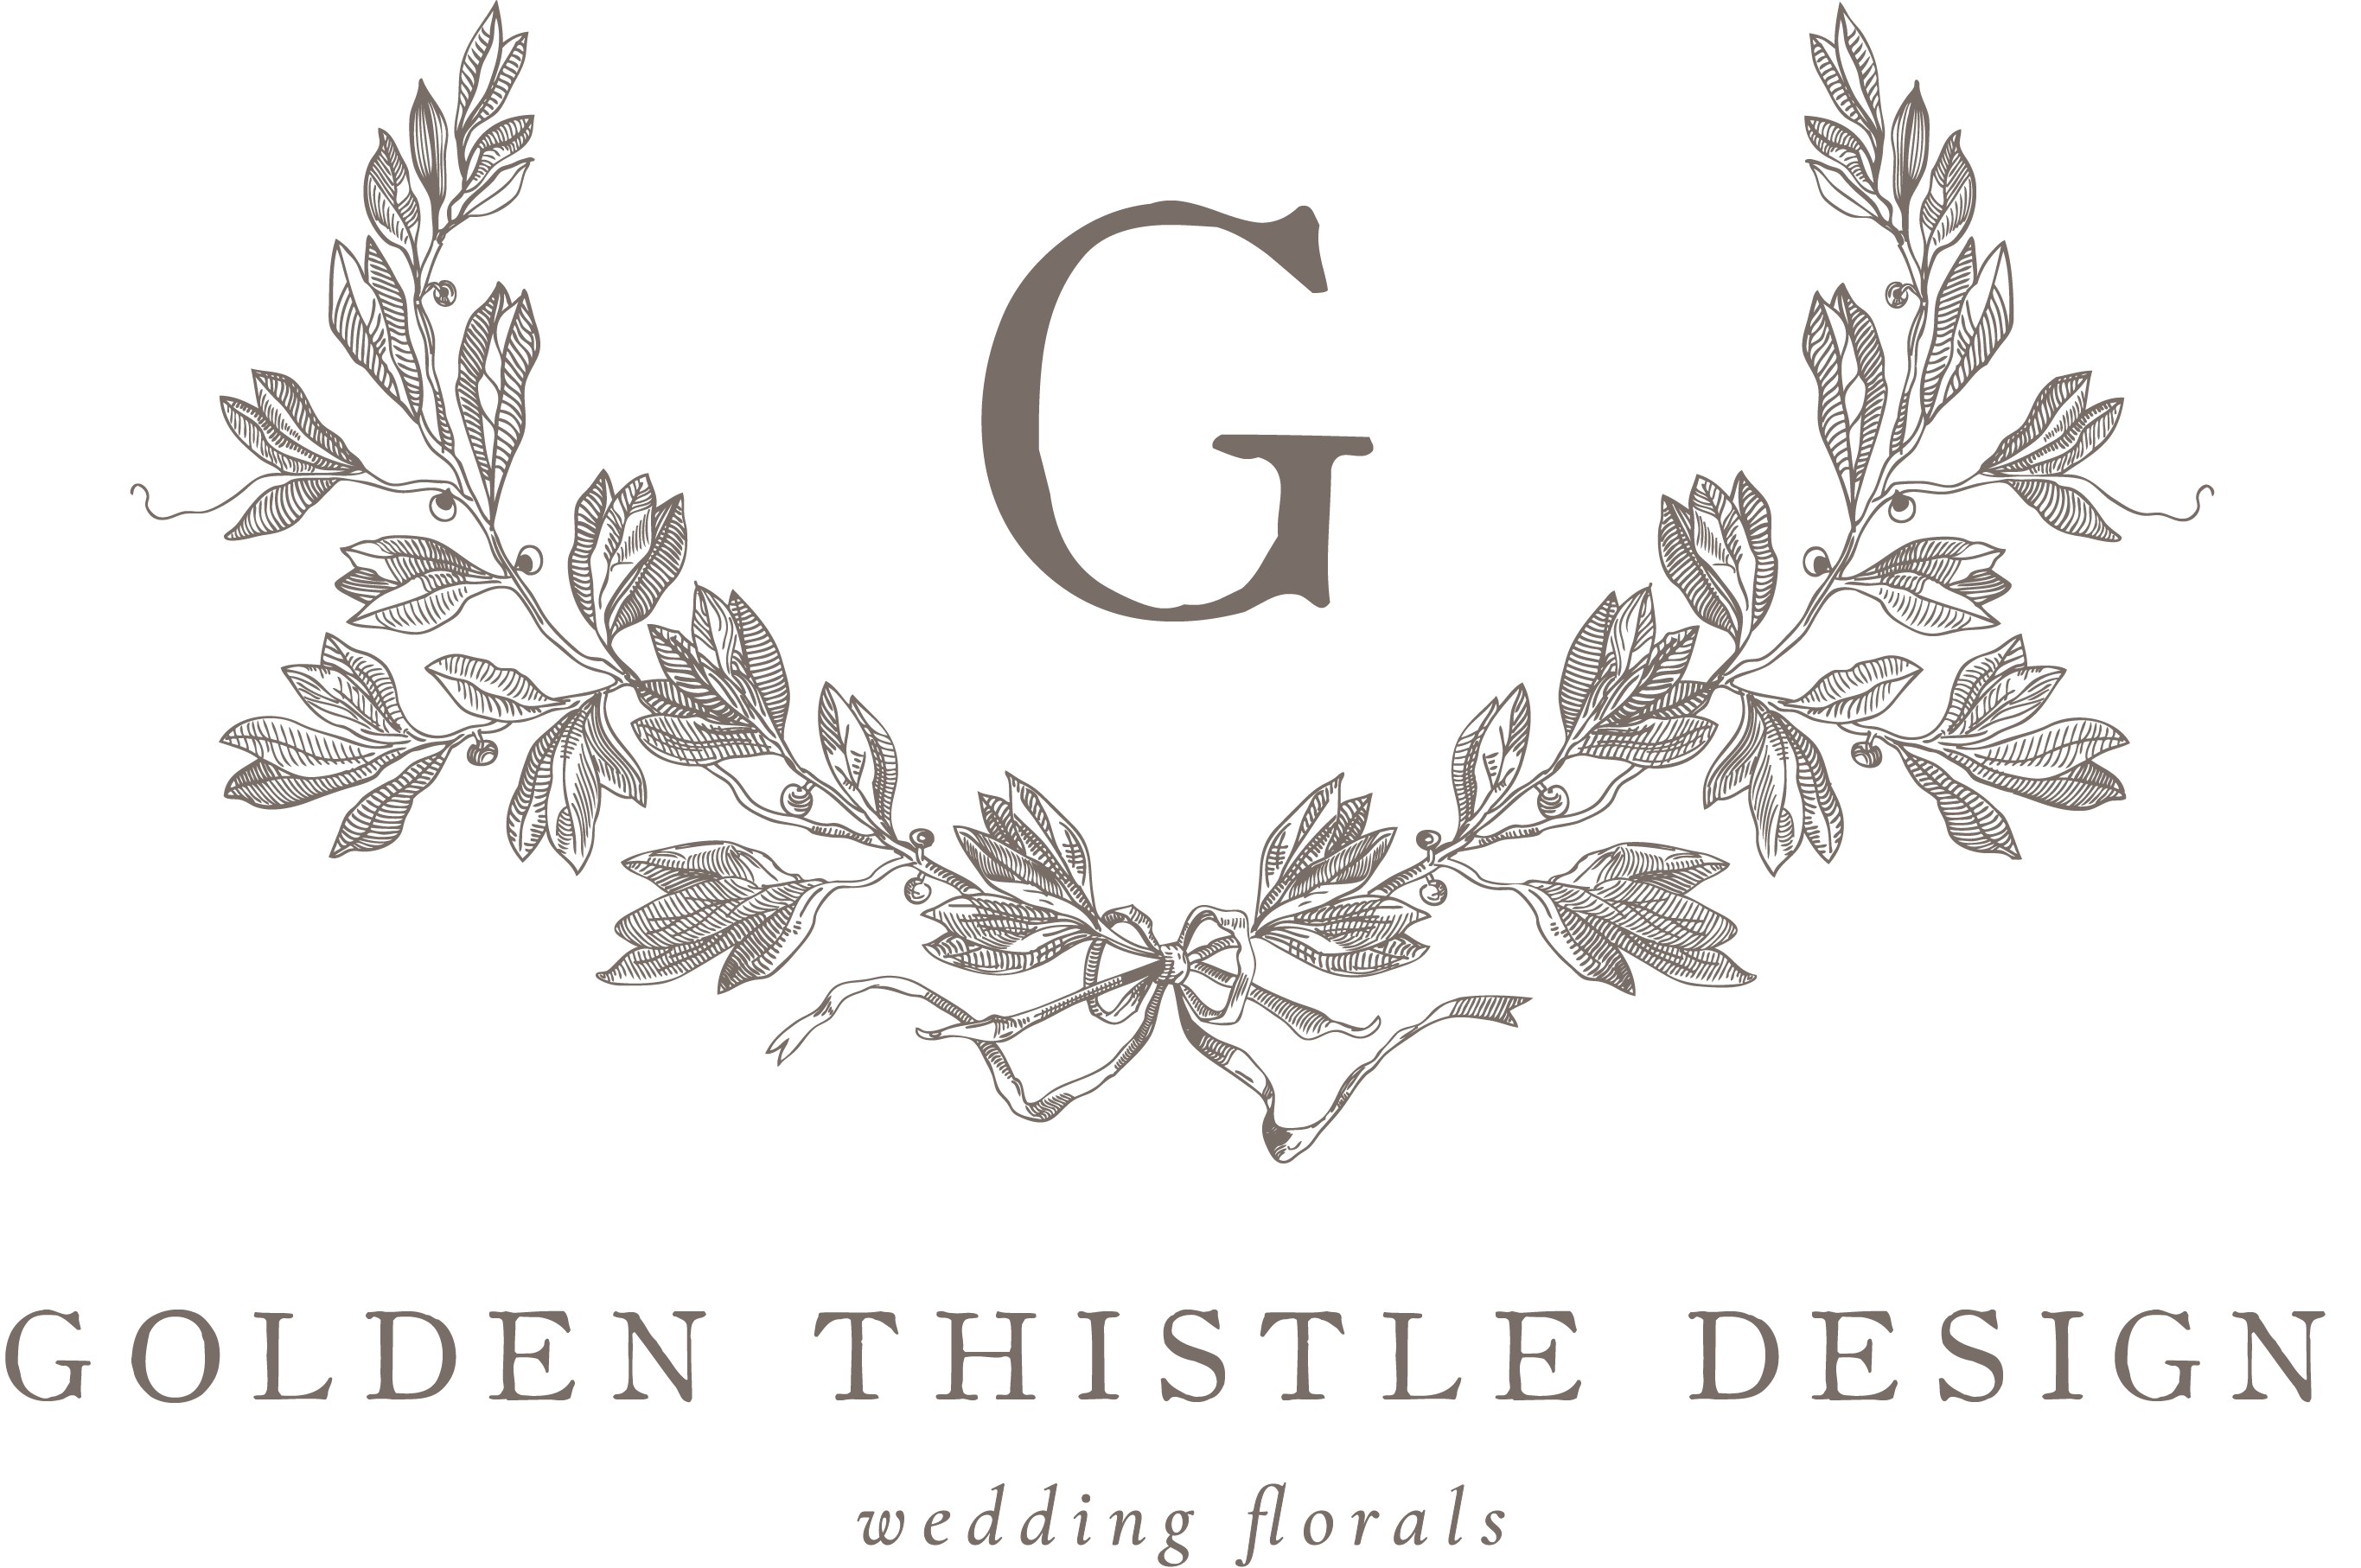 GOLDEN THISTLE DESIGN